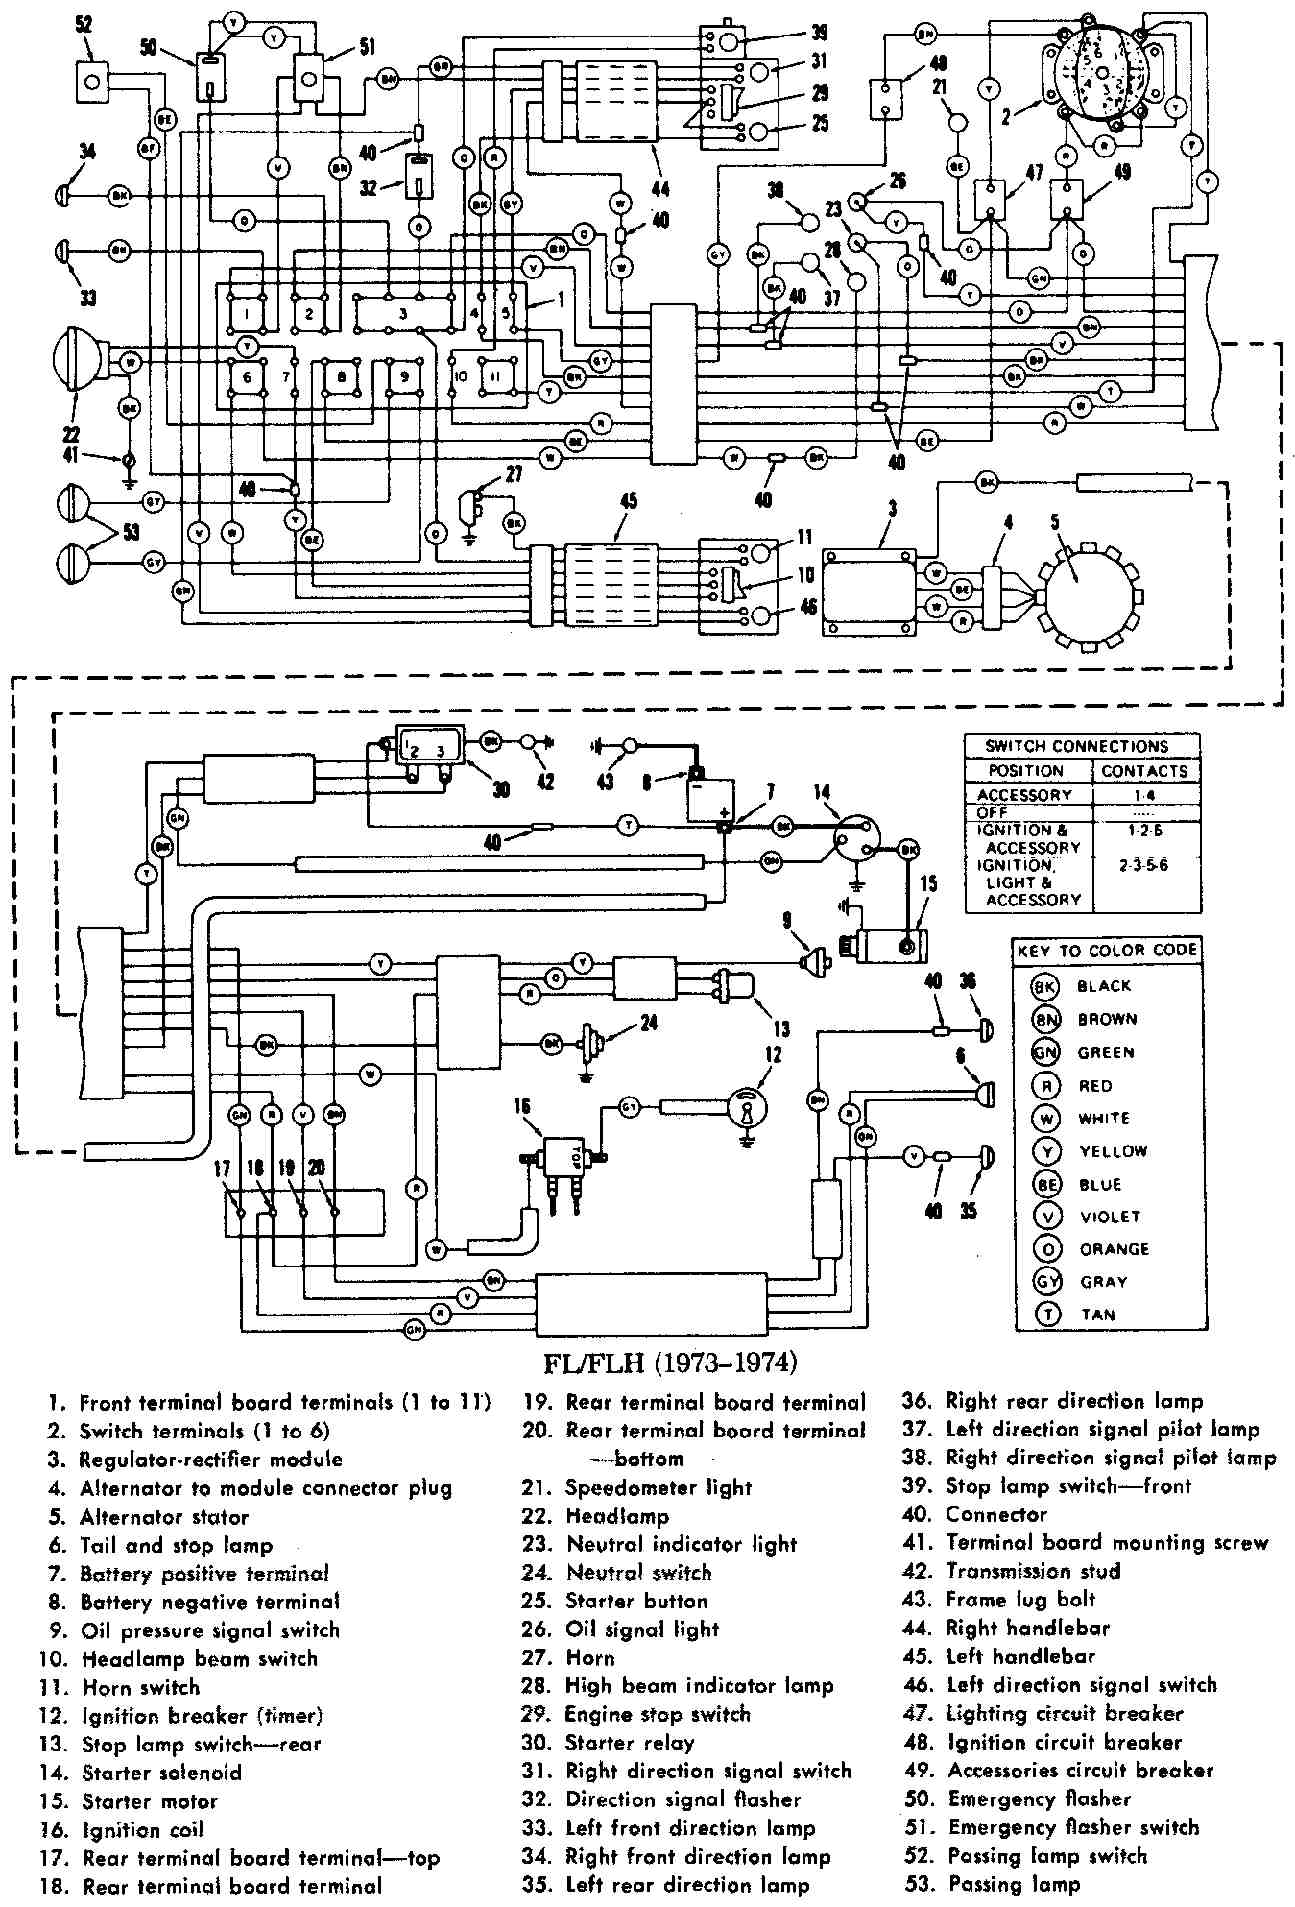 1972 Harley Davidson Electra Glide Wiring Diagram Diagrams Wide Simple Post 2015